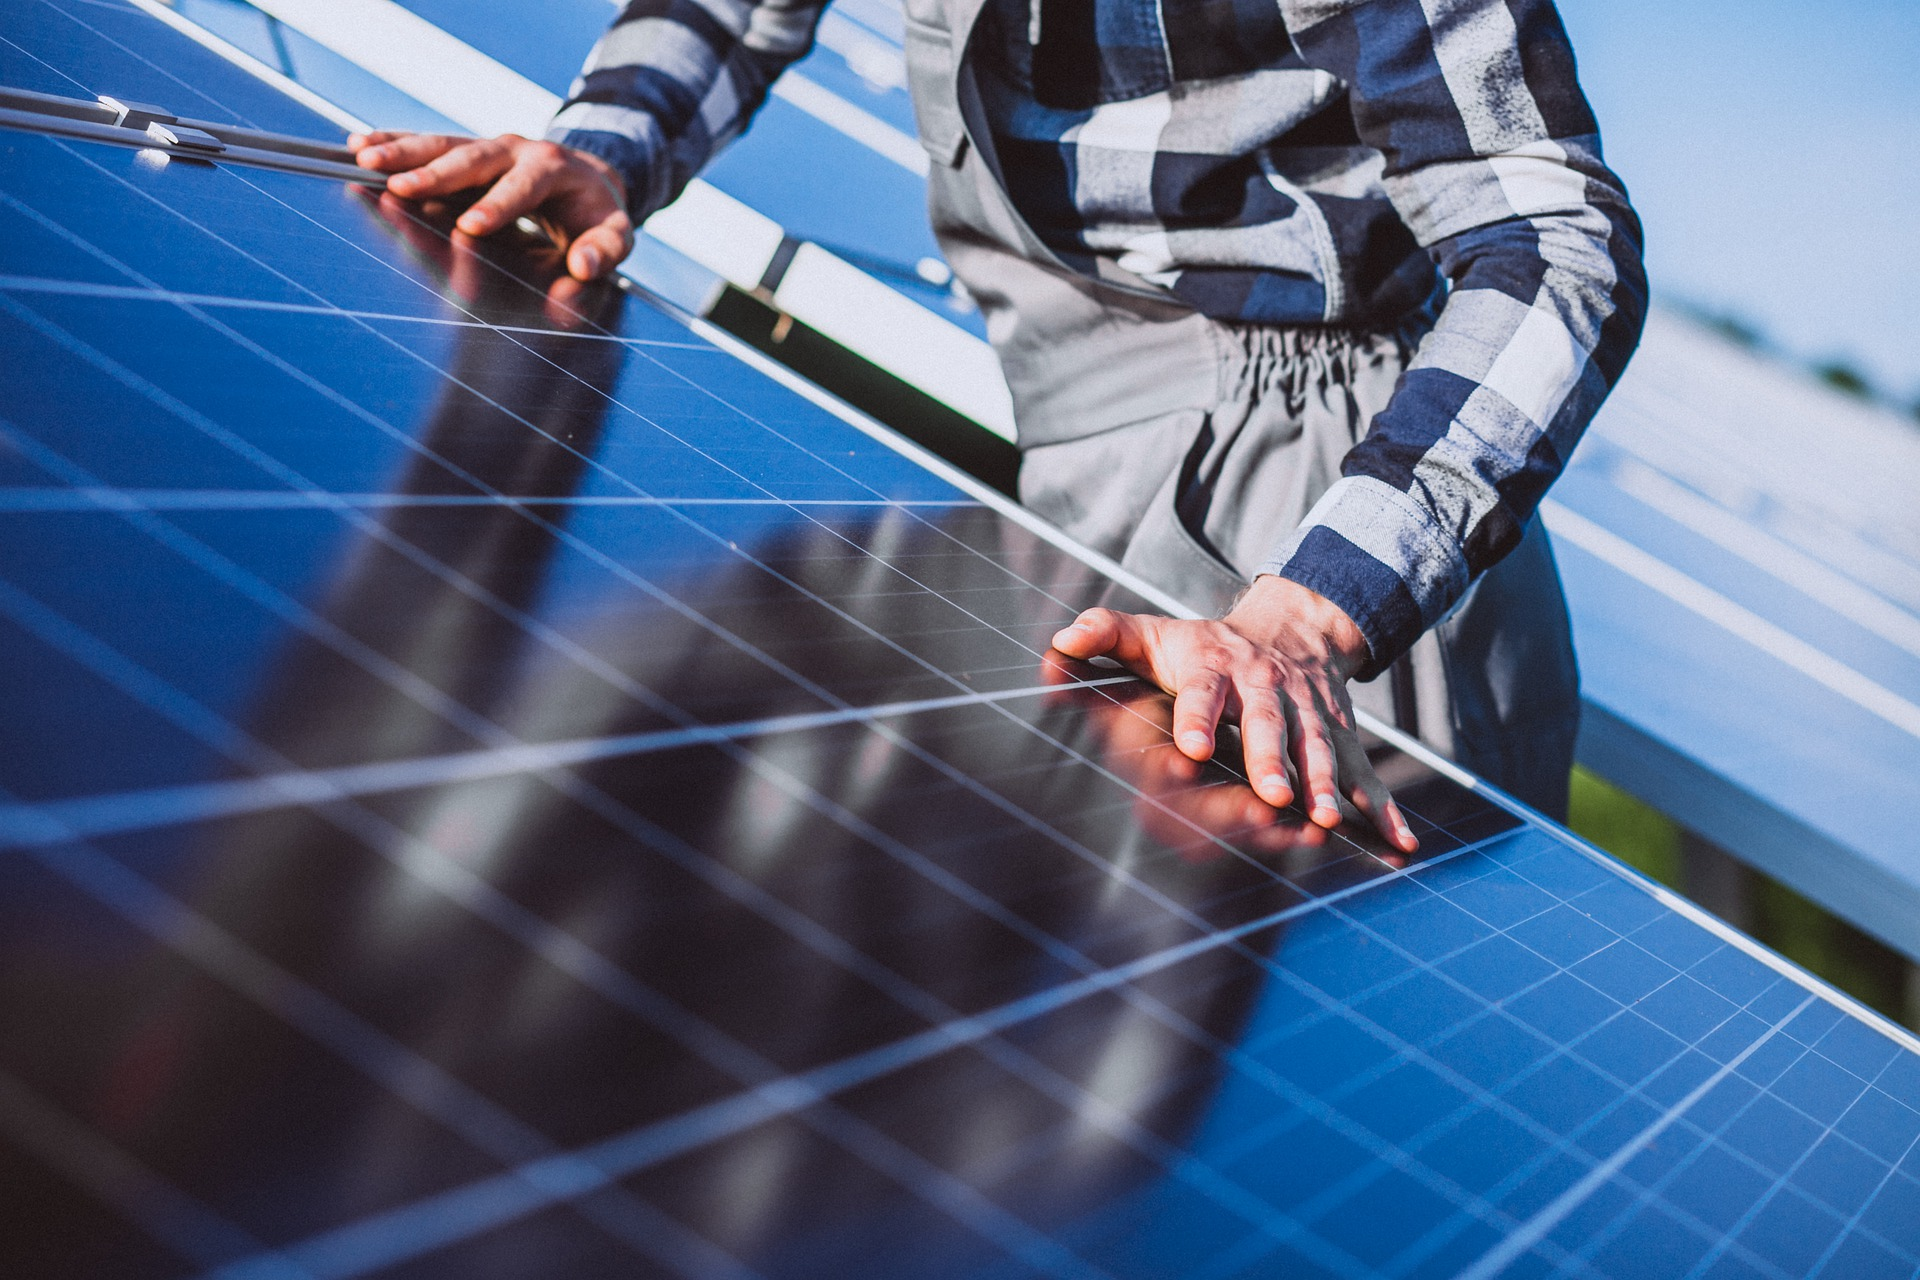 Man placing hands on solar panels on a rooftop